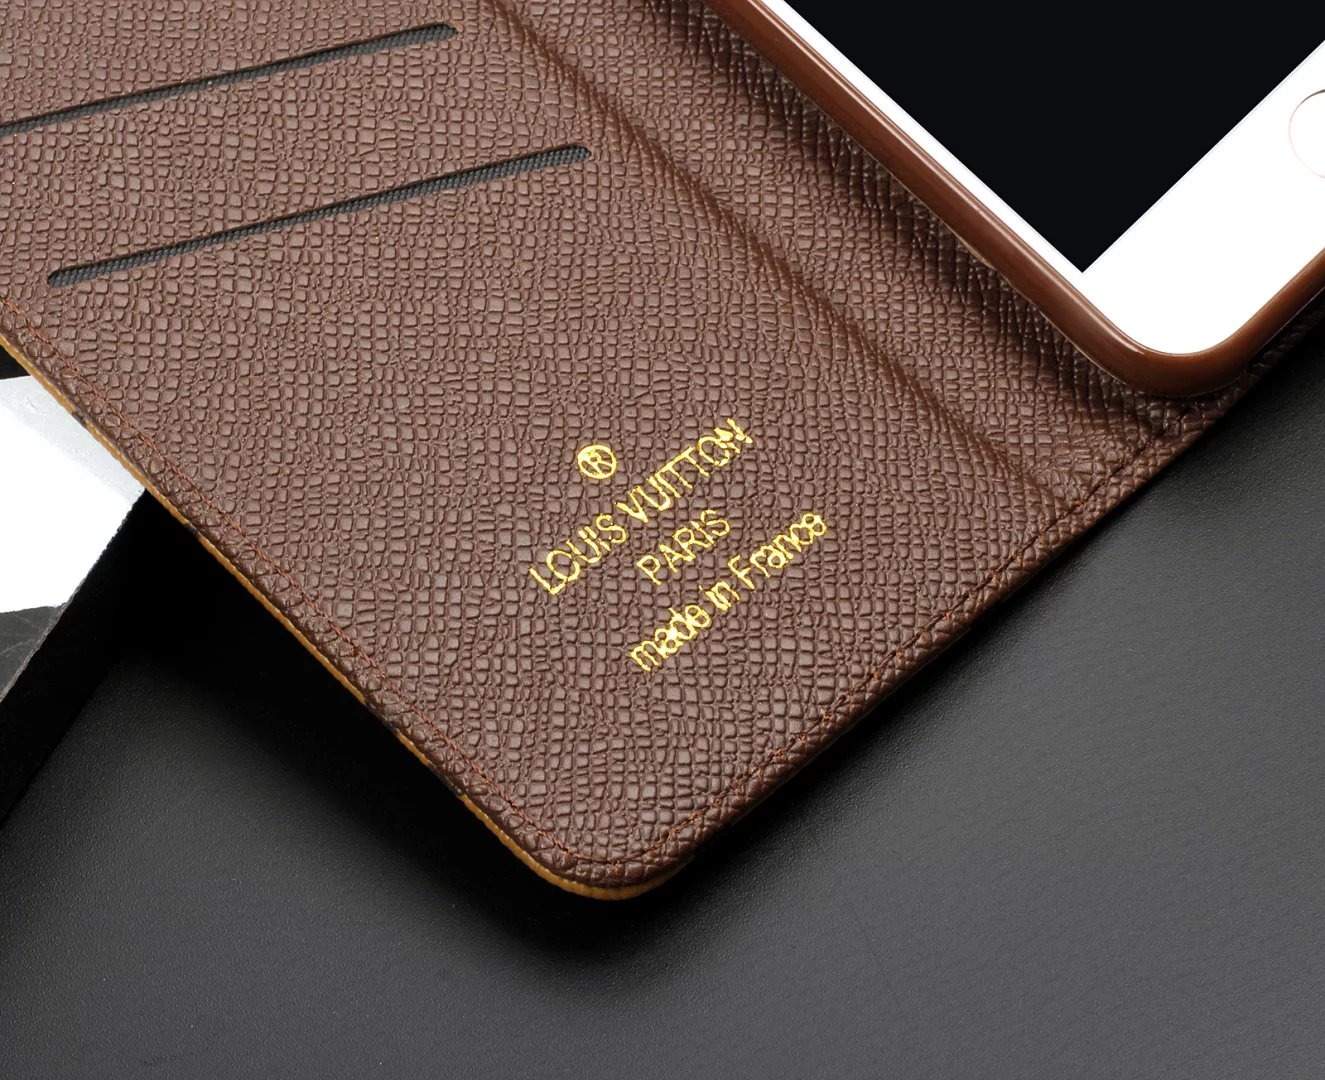 iphone hülle erstellen individuelle iphone hülle Louis Vuitton iphone 8 Plus hüllen iphone 8 Plus hutz hülle 8 Pluslbst gestalten iphone 8 Plus hülle mit kartenfach iphone ca8 Plus drucken individuelle handy cover iphone geldbeutel